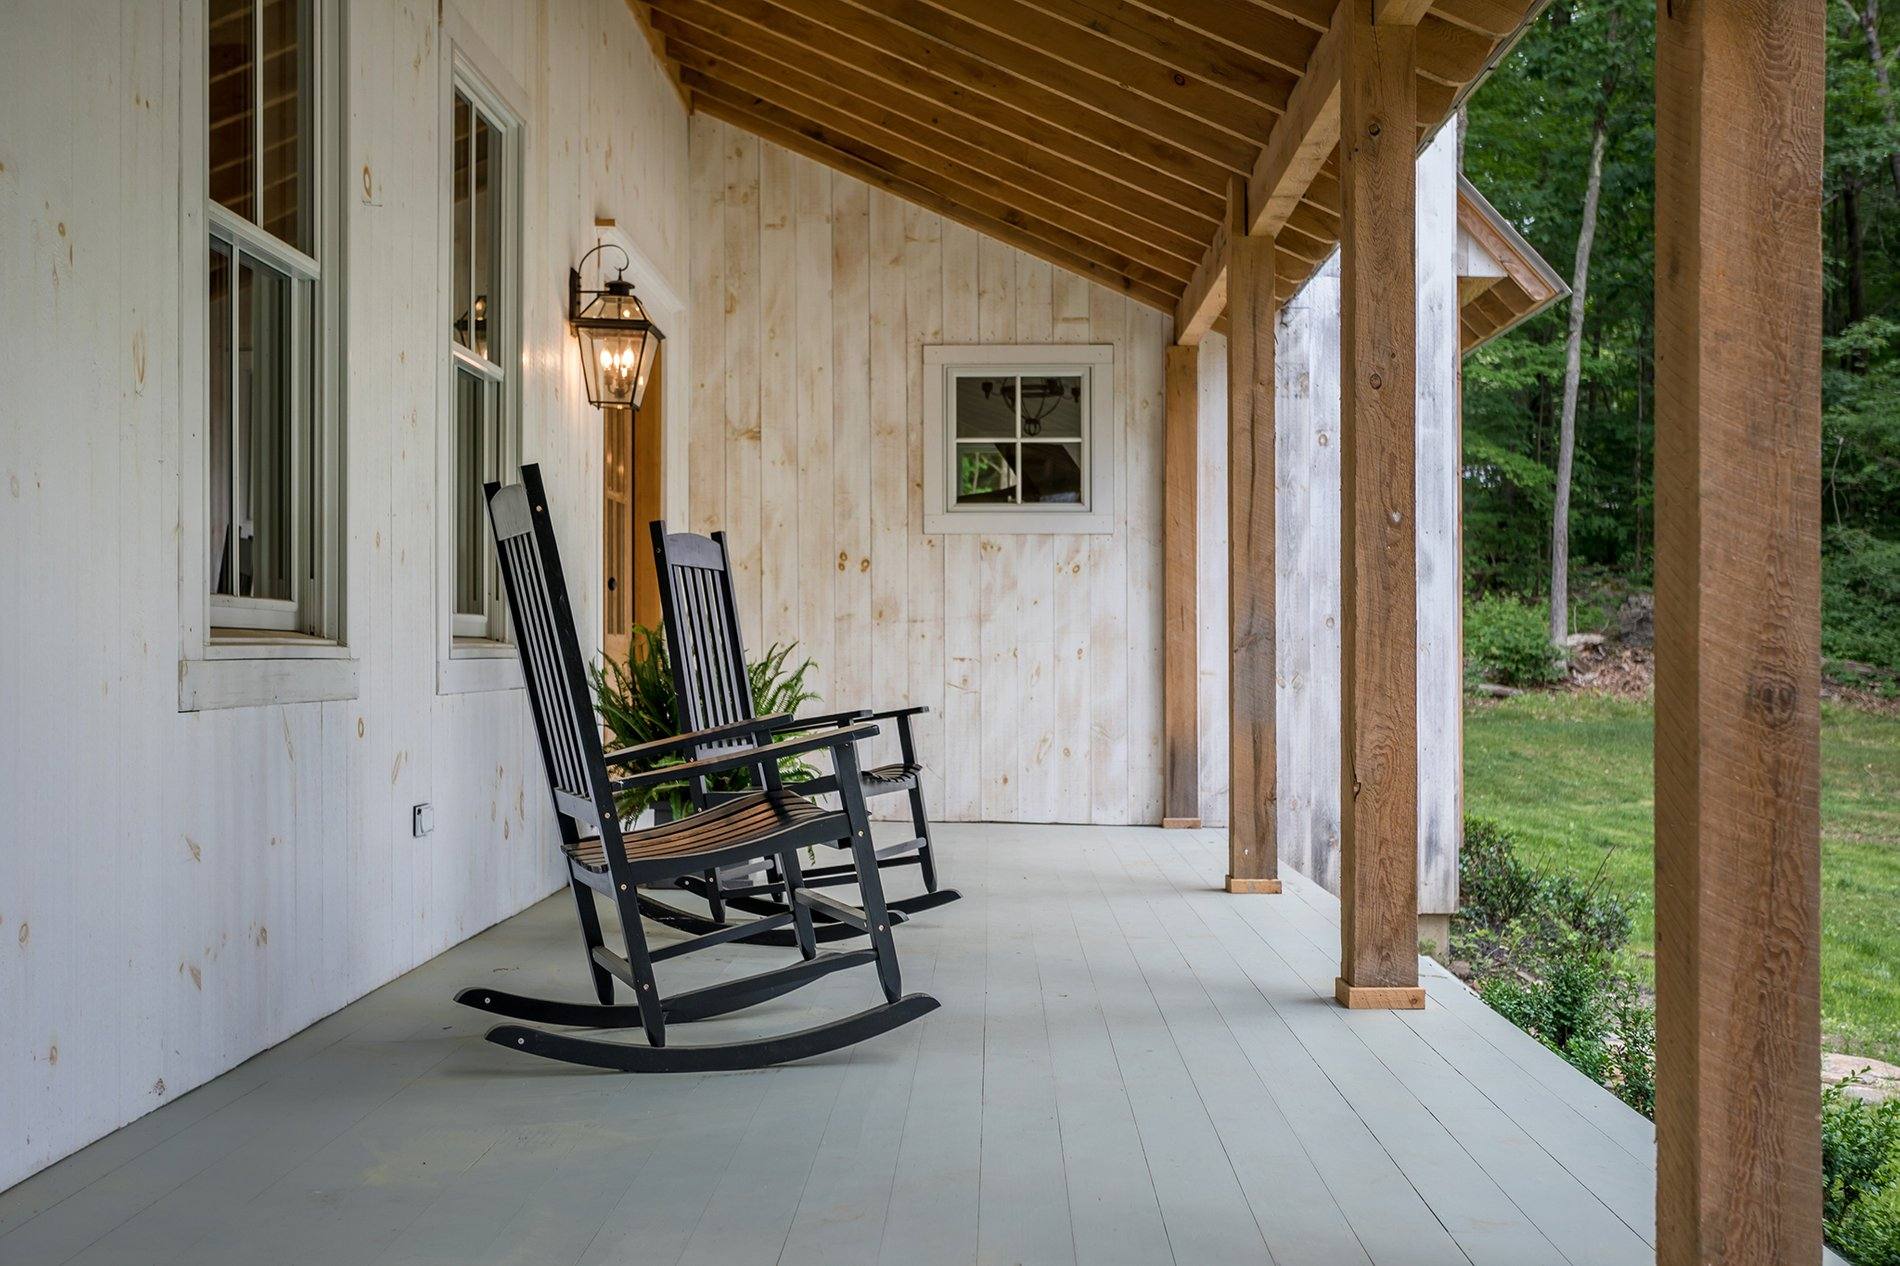 Country farmhouse style home with whitewashed wood siding along real timber exposed beams.